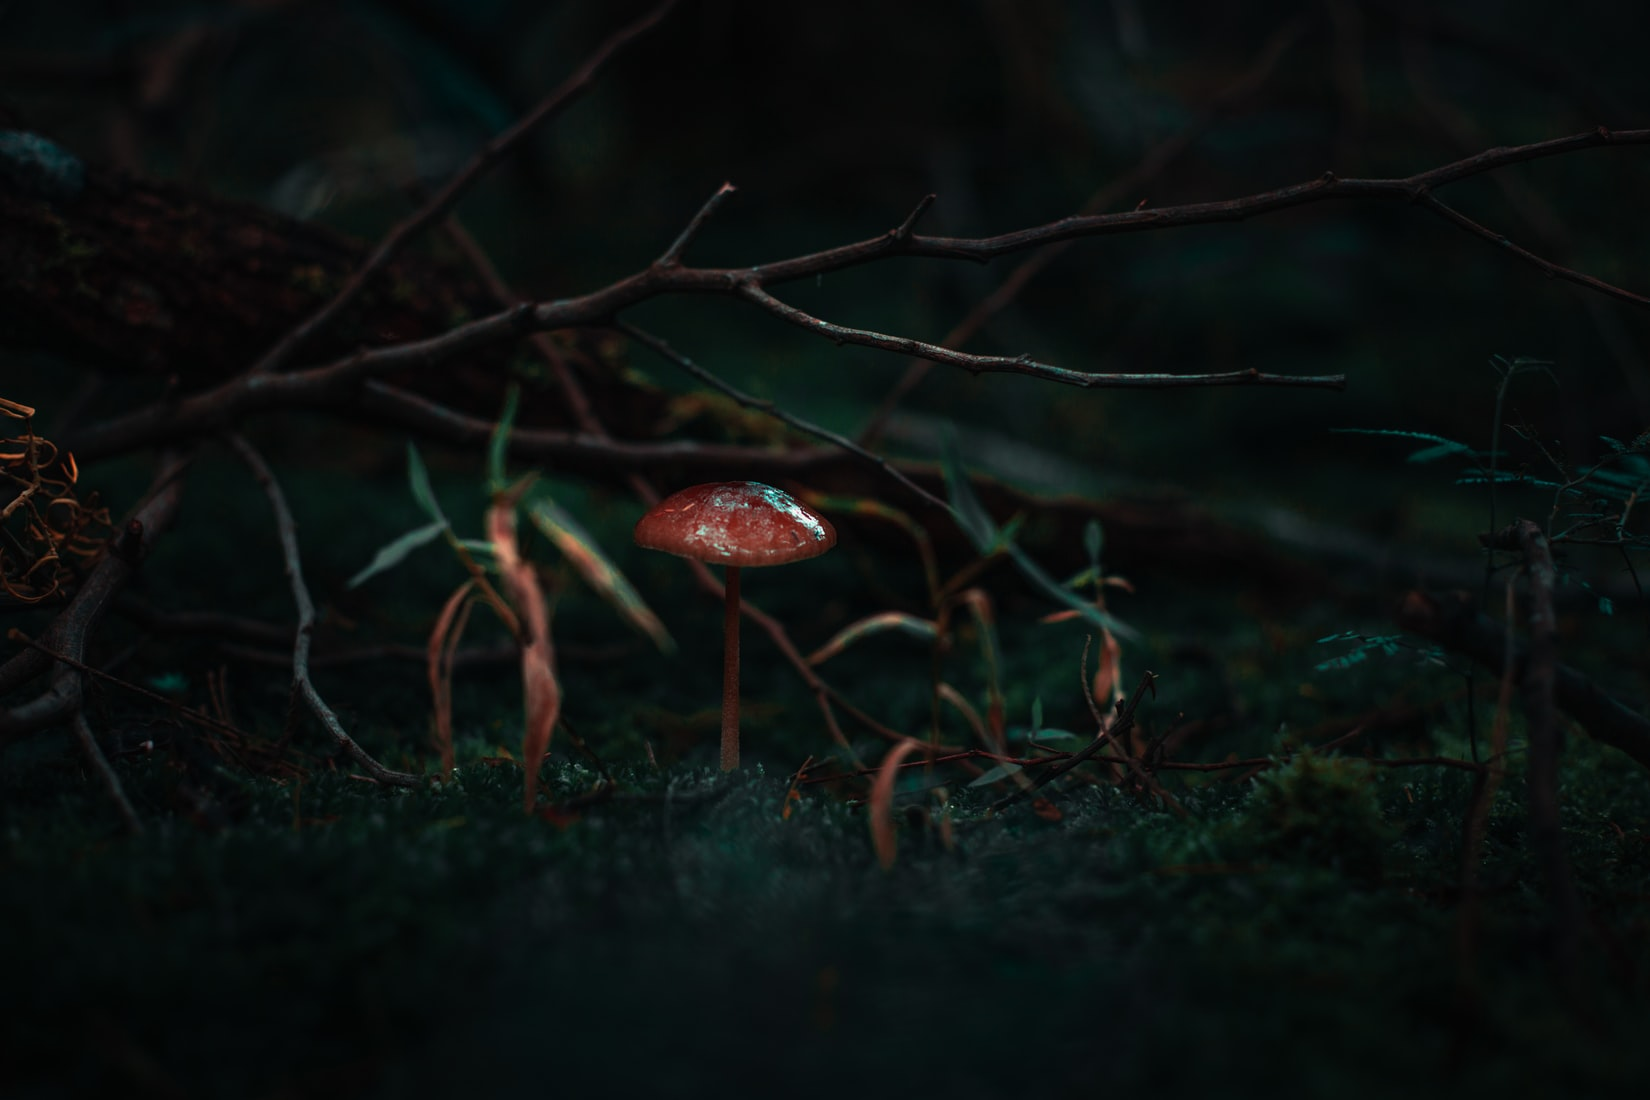 Red mushroom beside grass and sticks